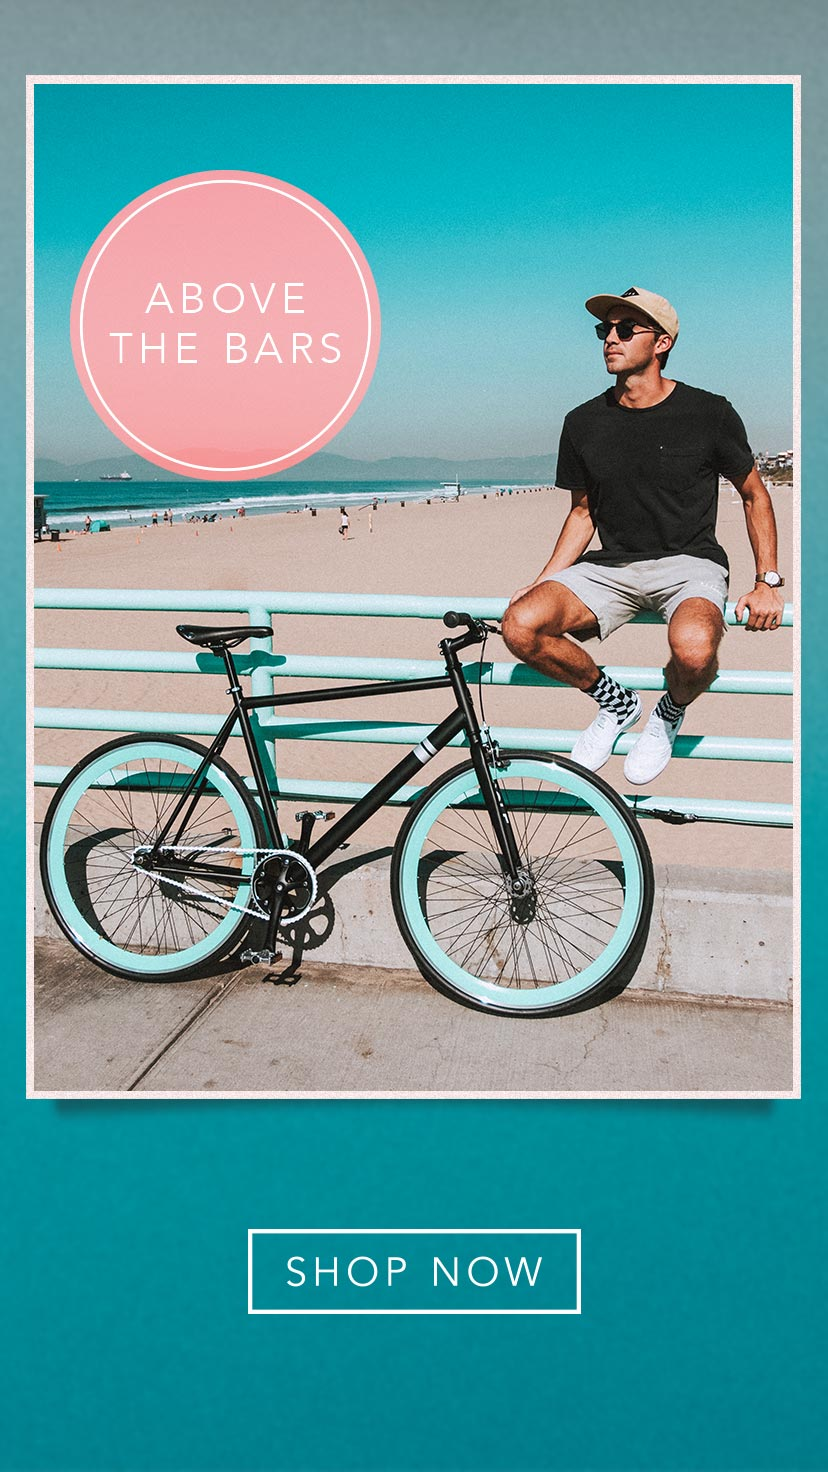 Above the Bars